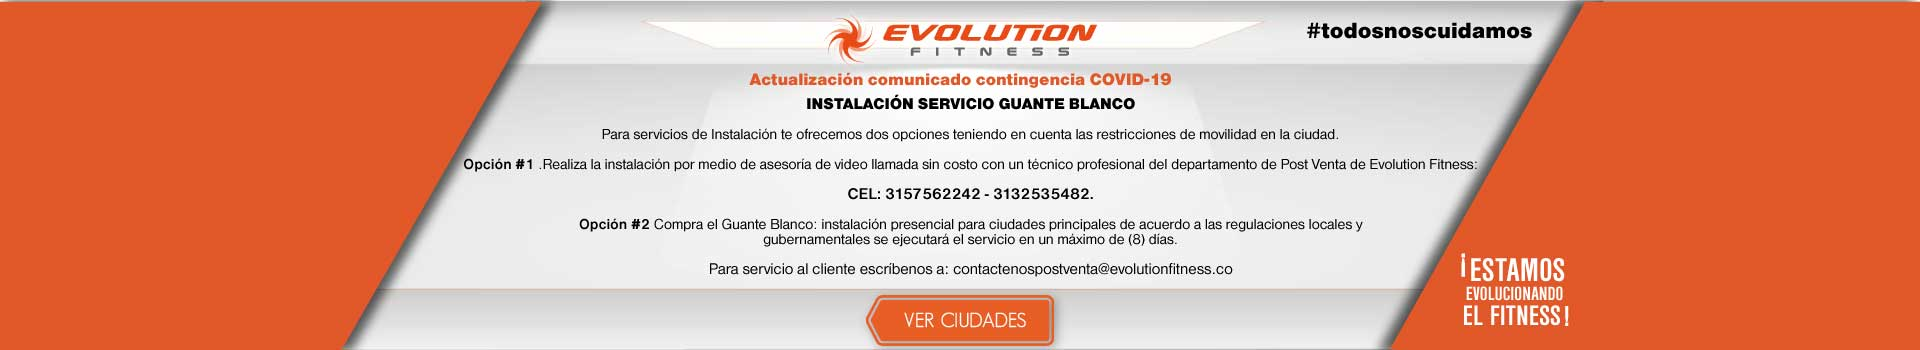 AK-KT-BCAT1-EVOLUTION-COMUNICADO-11JULIO2020